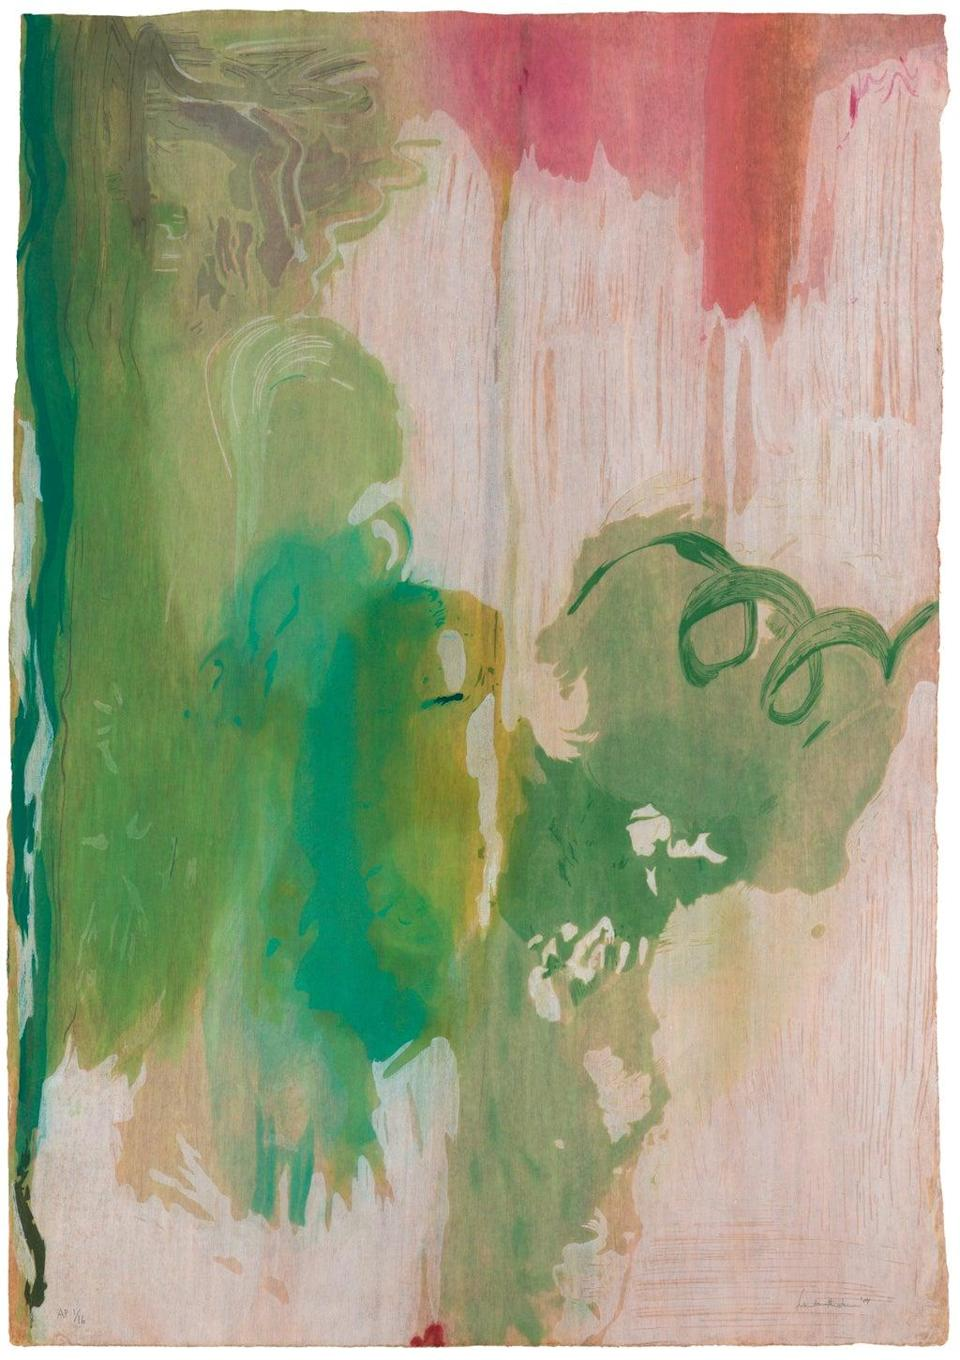 Helen Frankenthaler, Snow Pines, 2004. Thirty-four color woodcut (© 2021 Helen Frankenthaler Foundation, Inc. / ARS, NY and DACS, London / Pace Editions, Inc., NY)